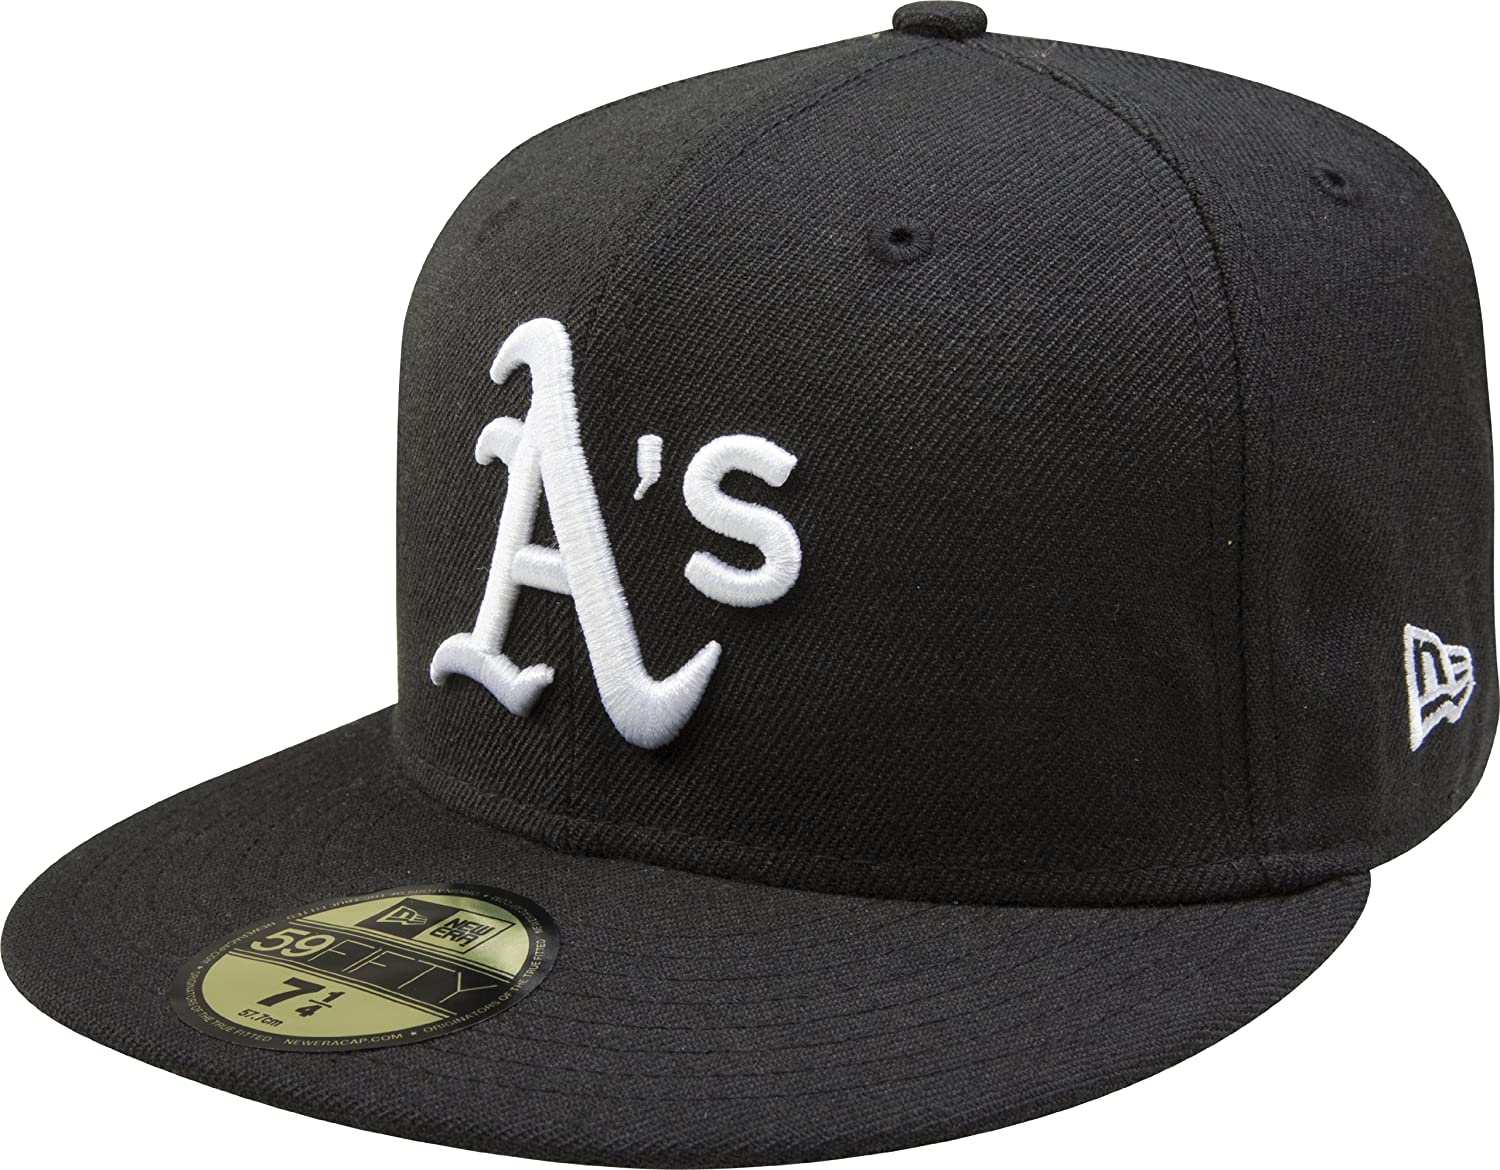 Amazon.com   New Era MLB Black with White 59FIFTY Fitted Cap   Sports    Outdoors 973fb4d7c0c